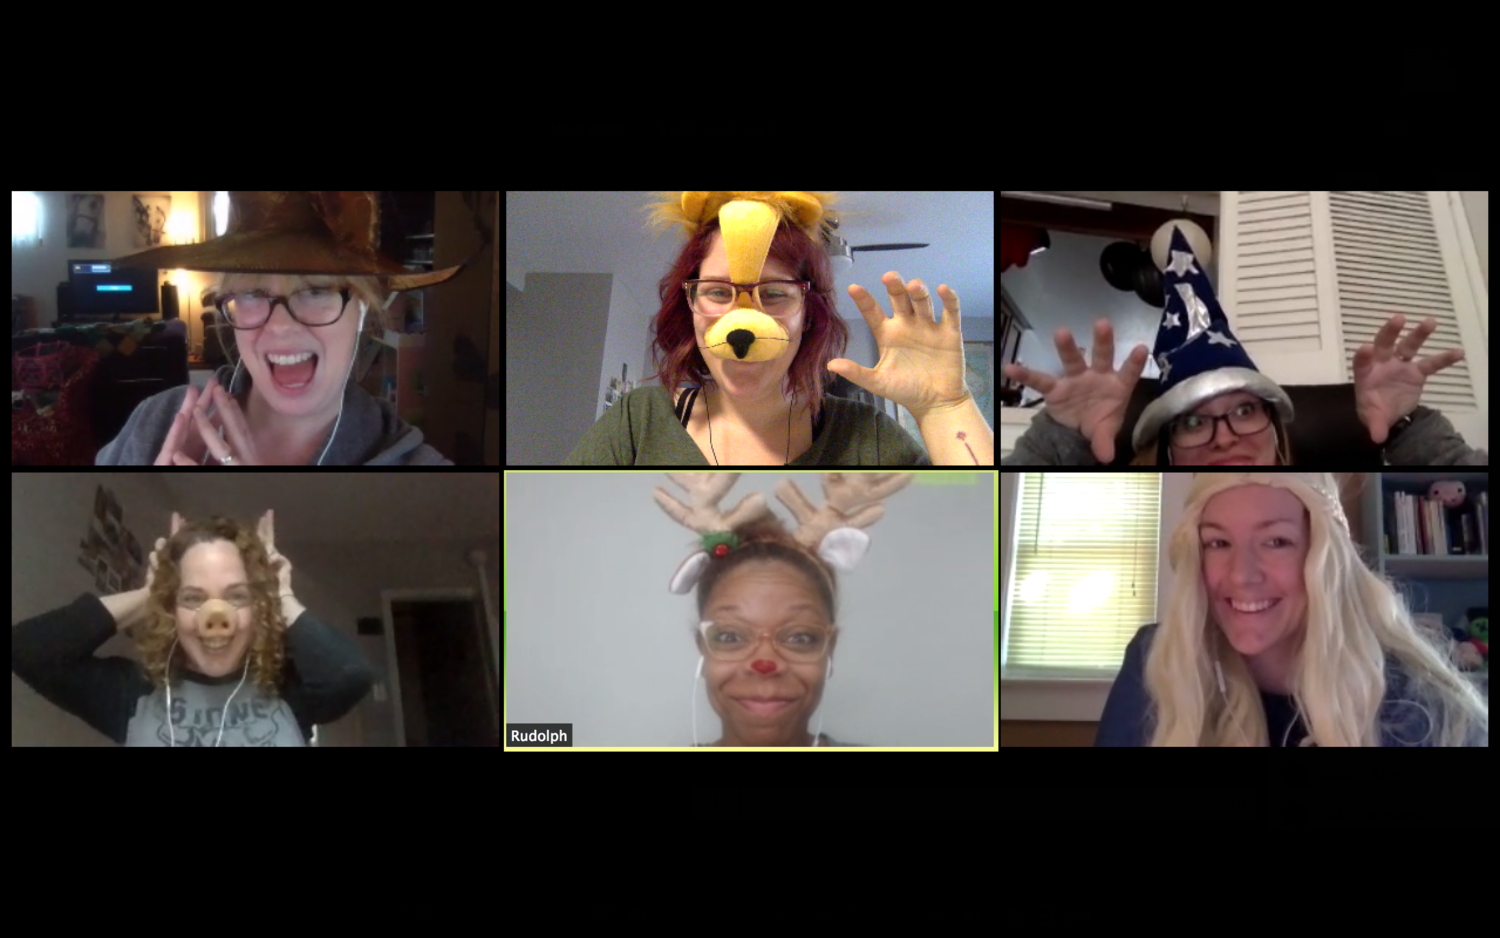 A few Skillcrush instructors celebrating Halloween during their daily check-in.